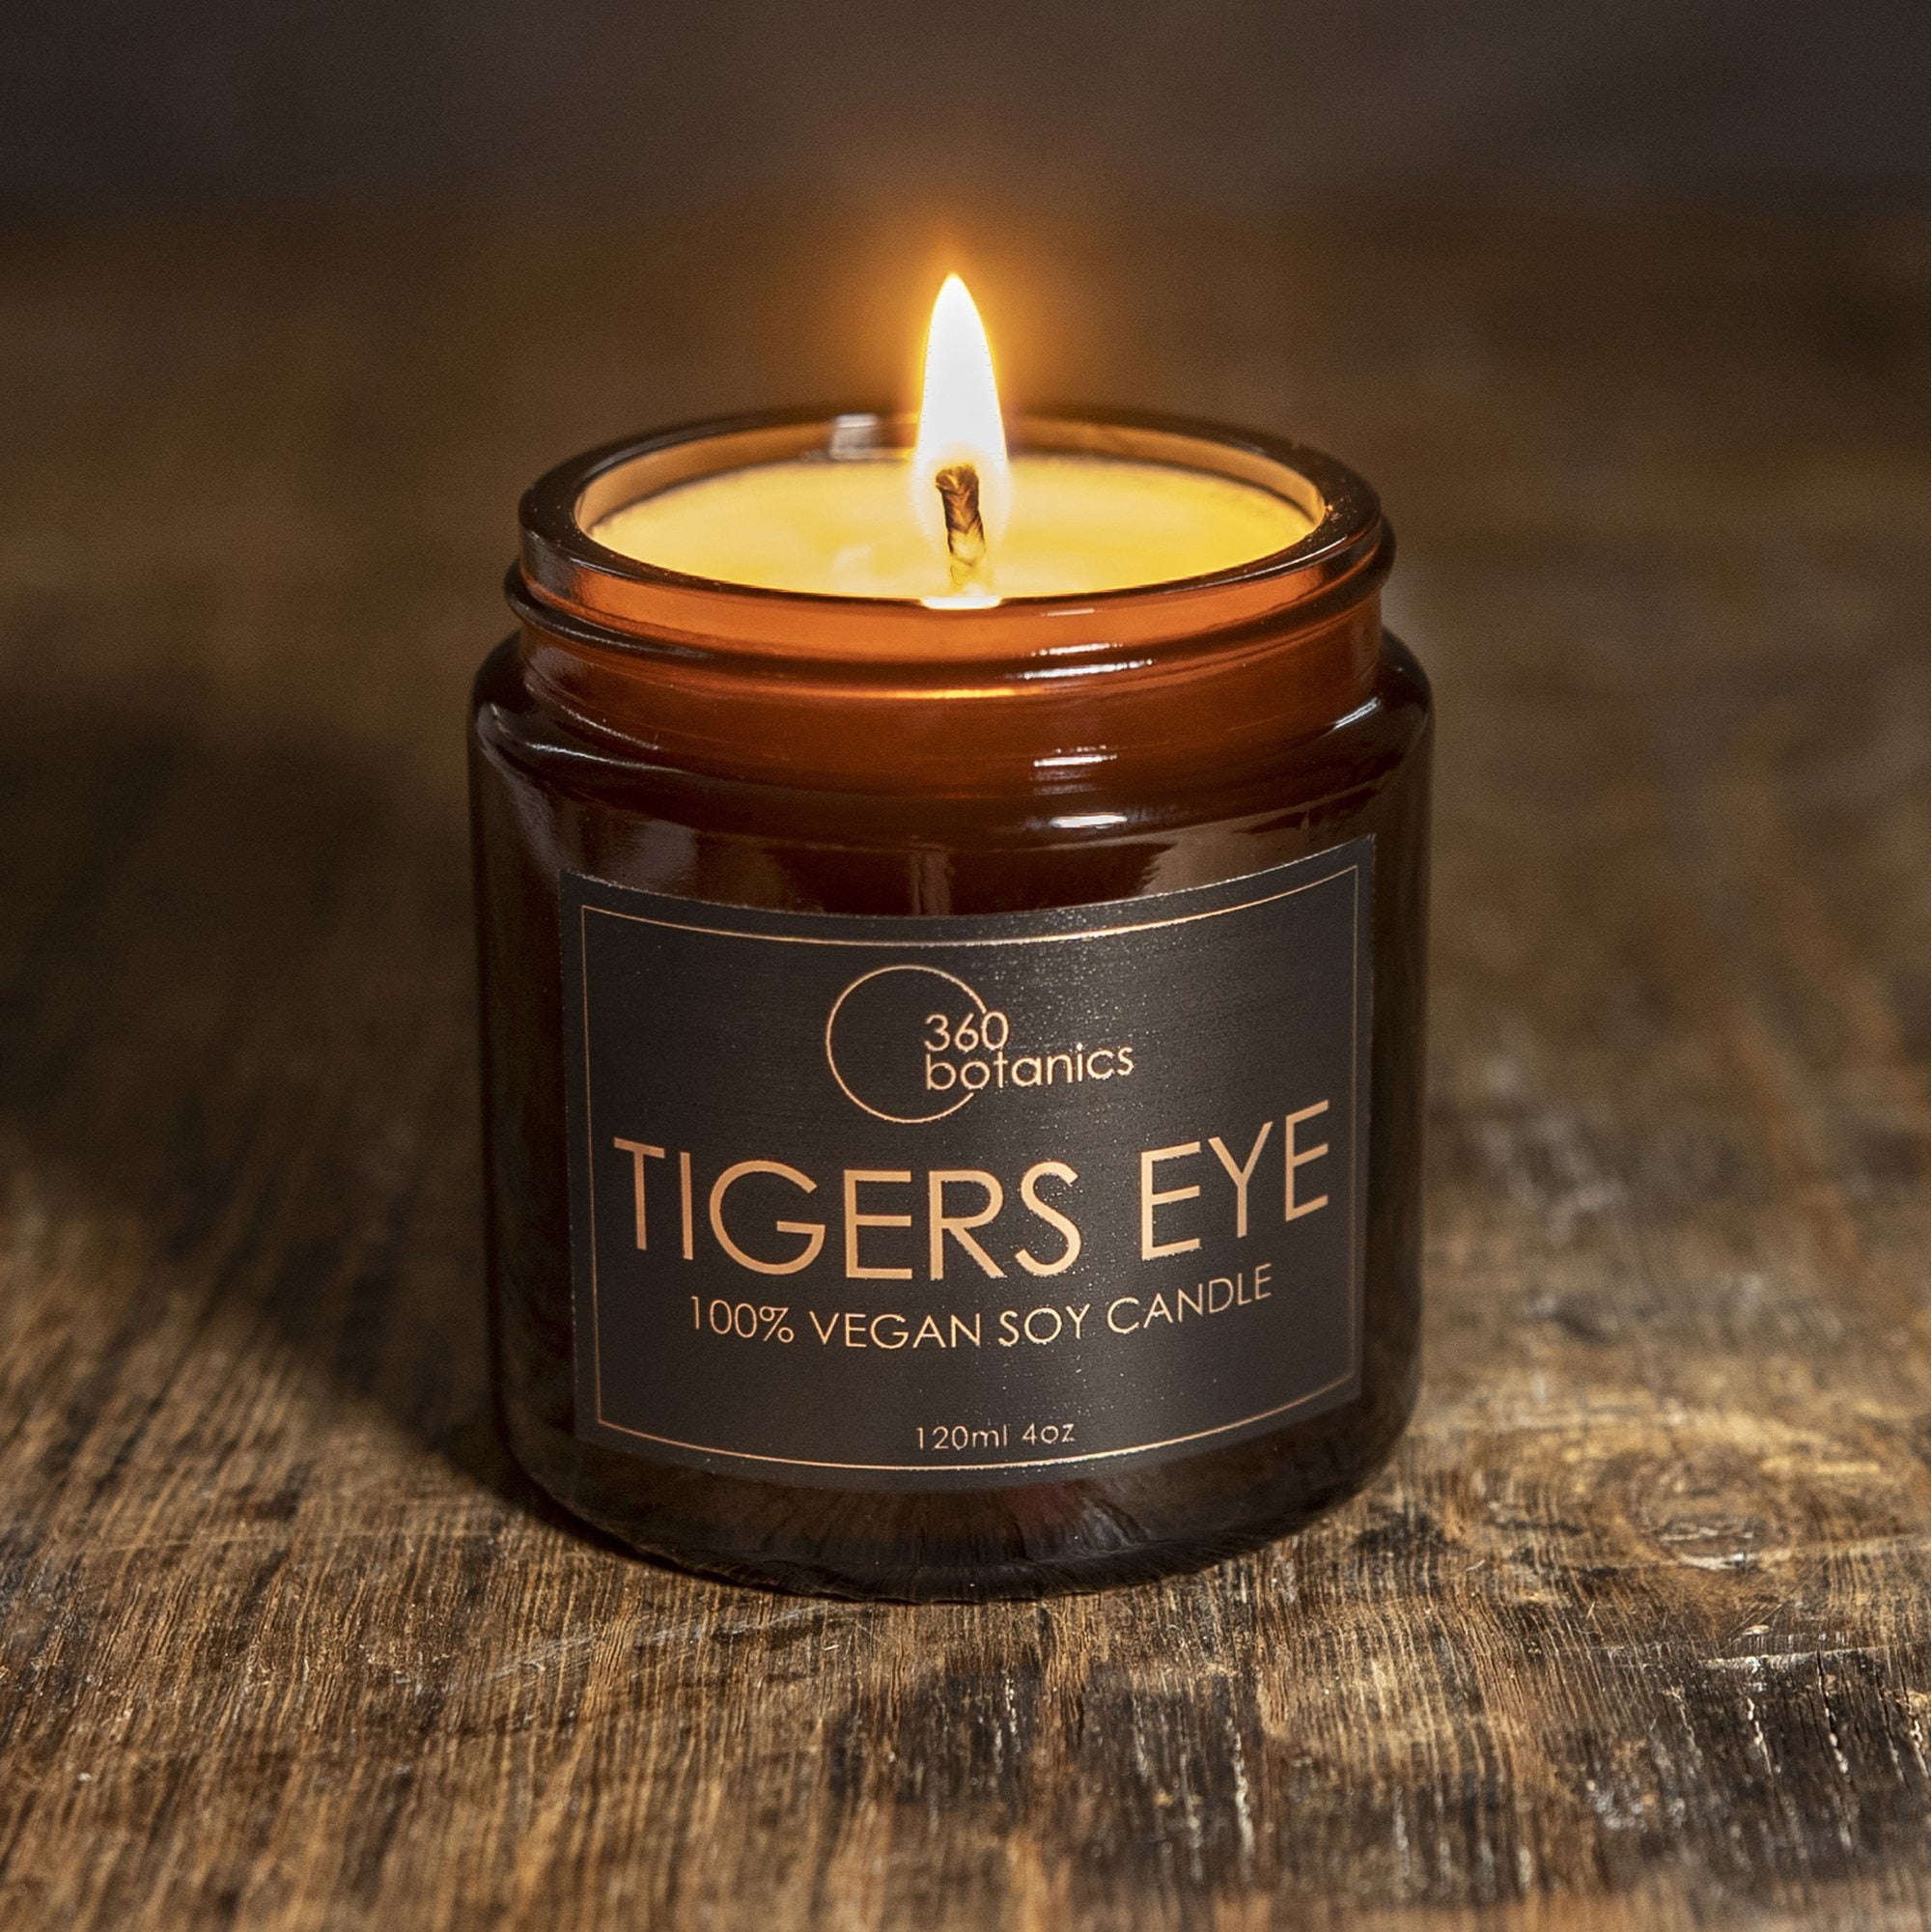 360botanics-Tigerseye-vegan-soy-Candle photographed on dark tone background